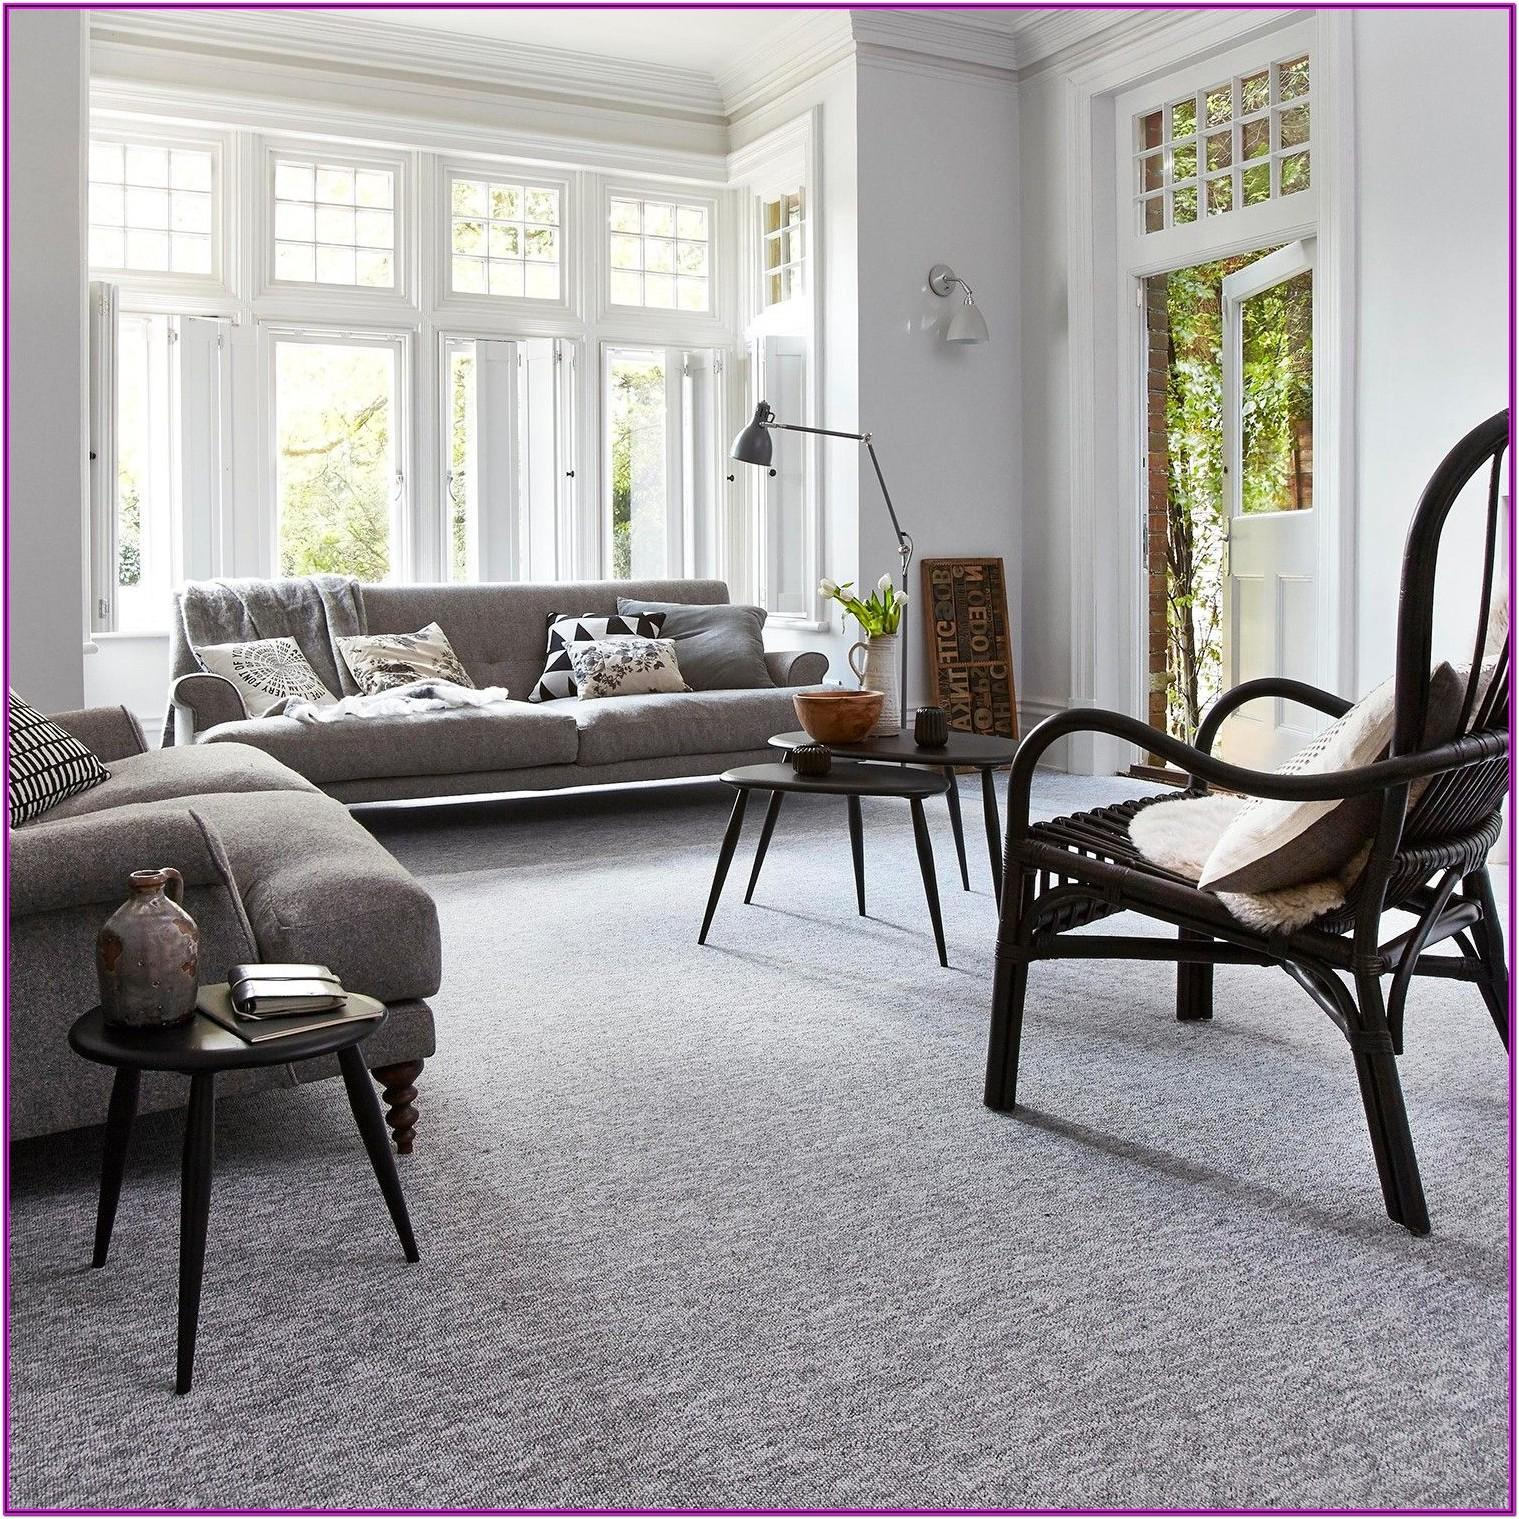 Living Room Decorating With Gray Carpet